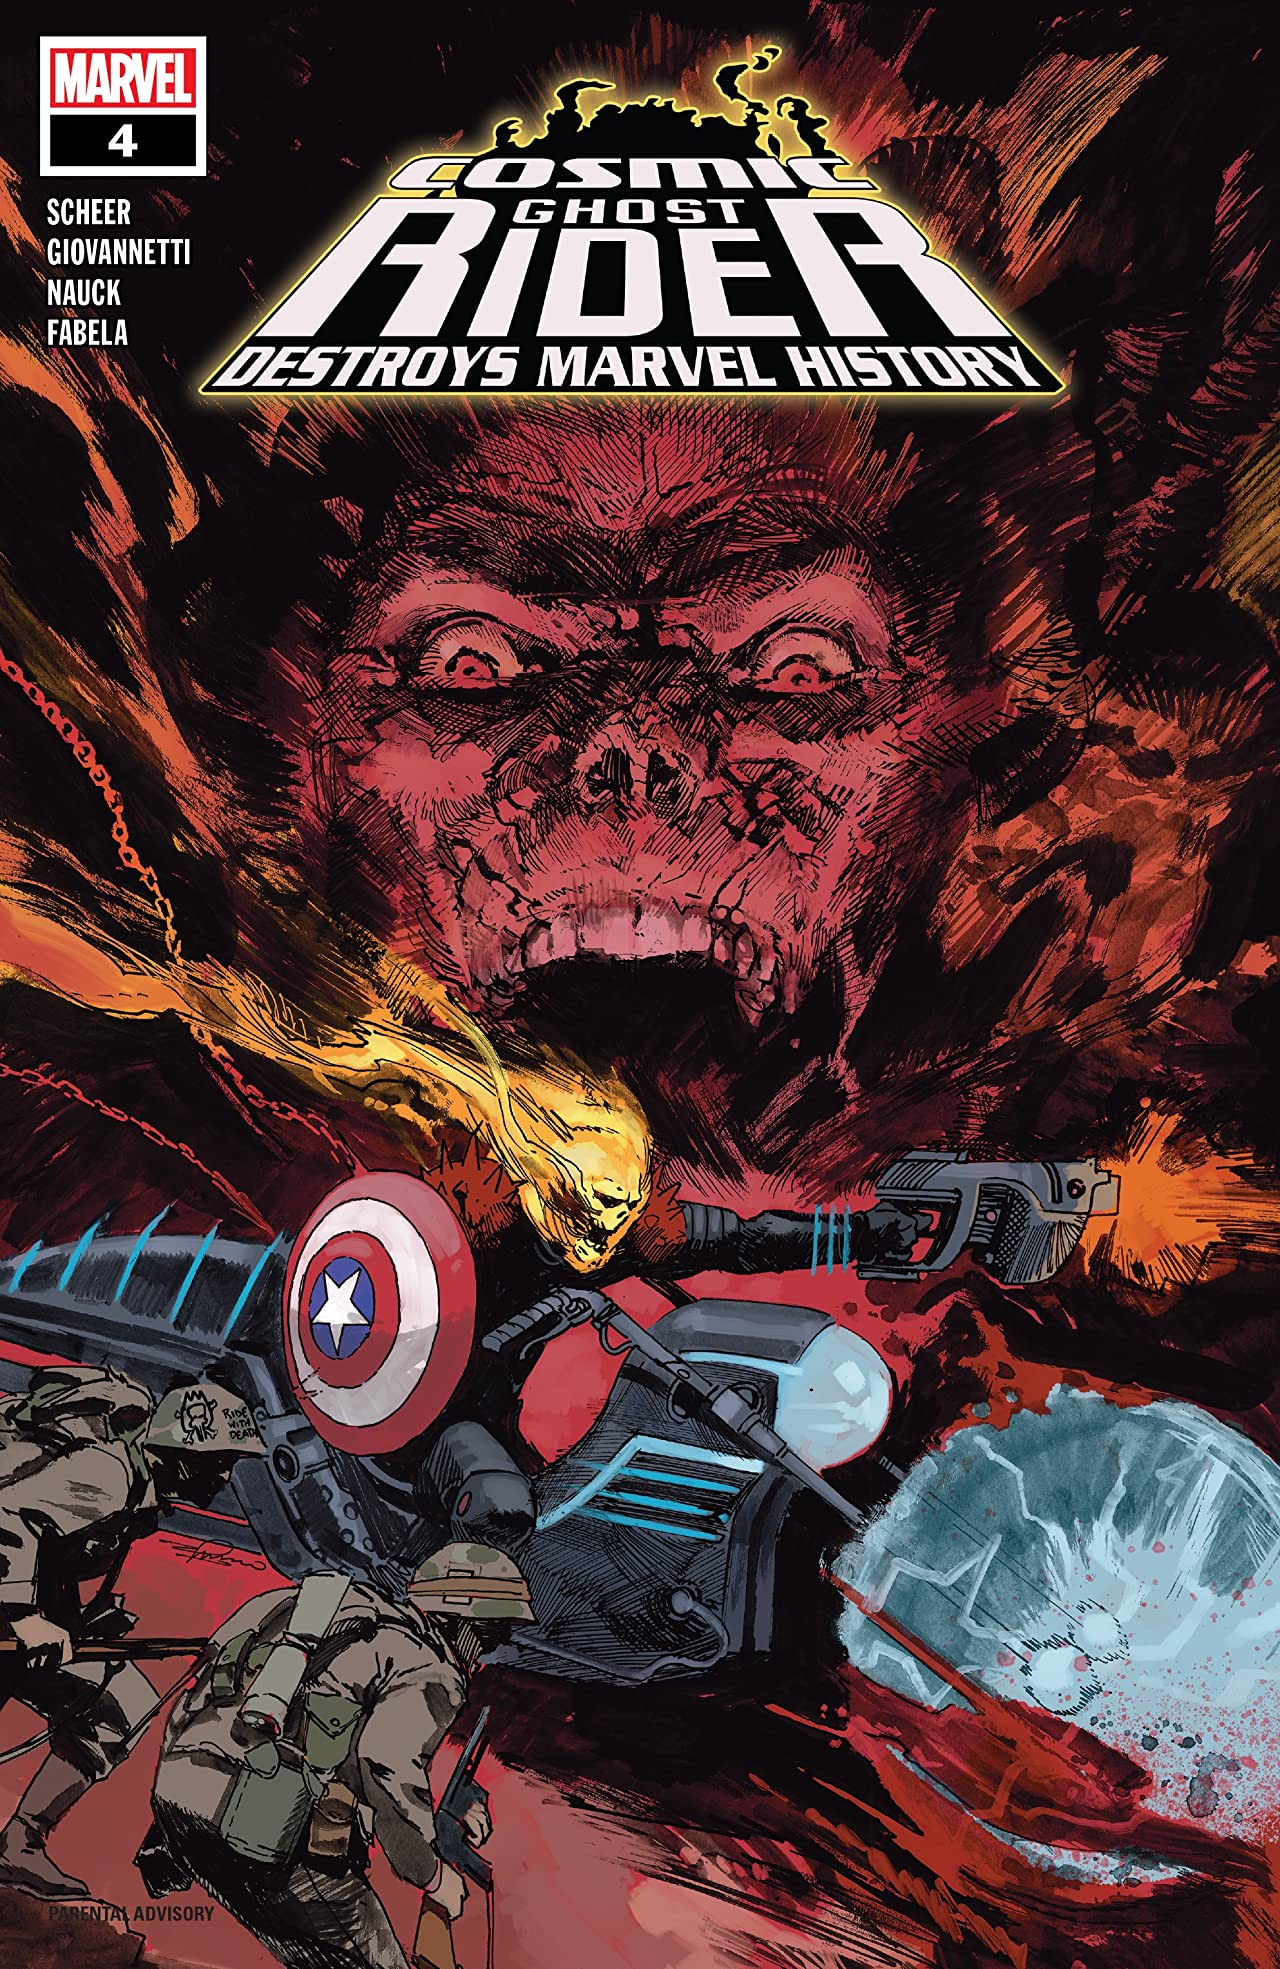 Cosmic Ghost Rider Destroys Marvel History (2019) #4 (of 6)